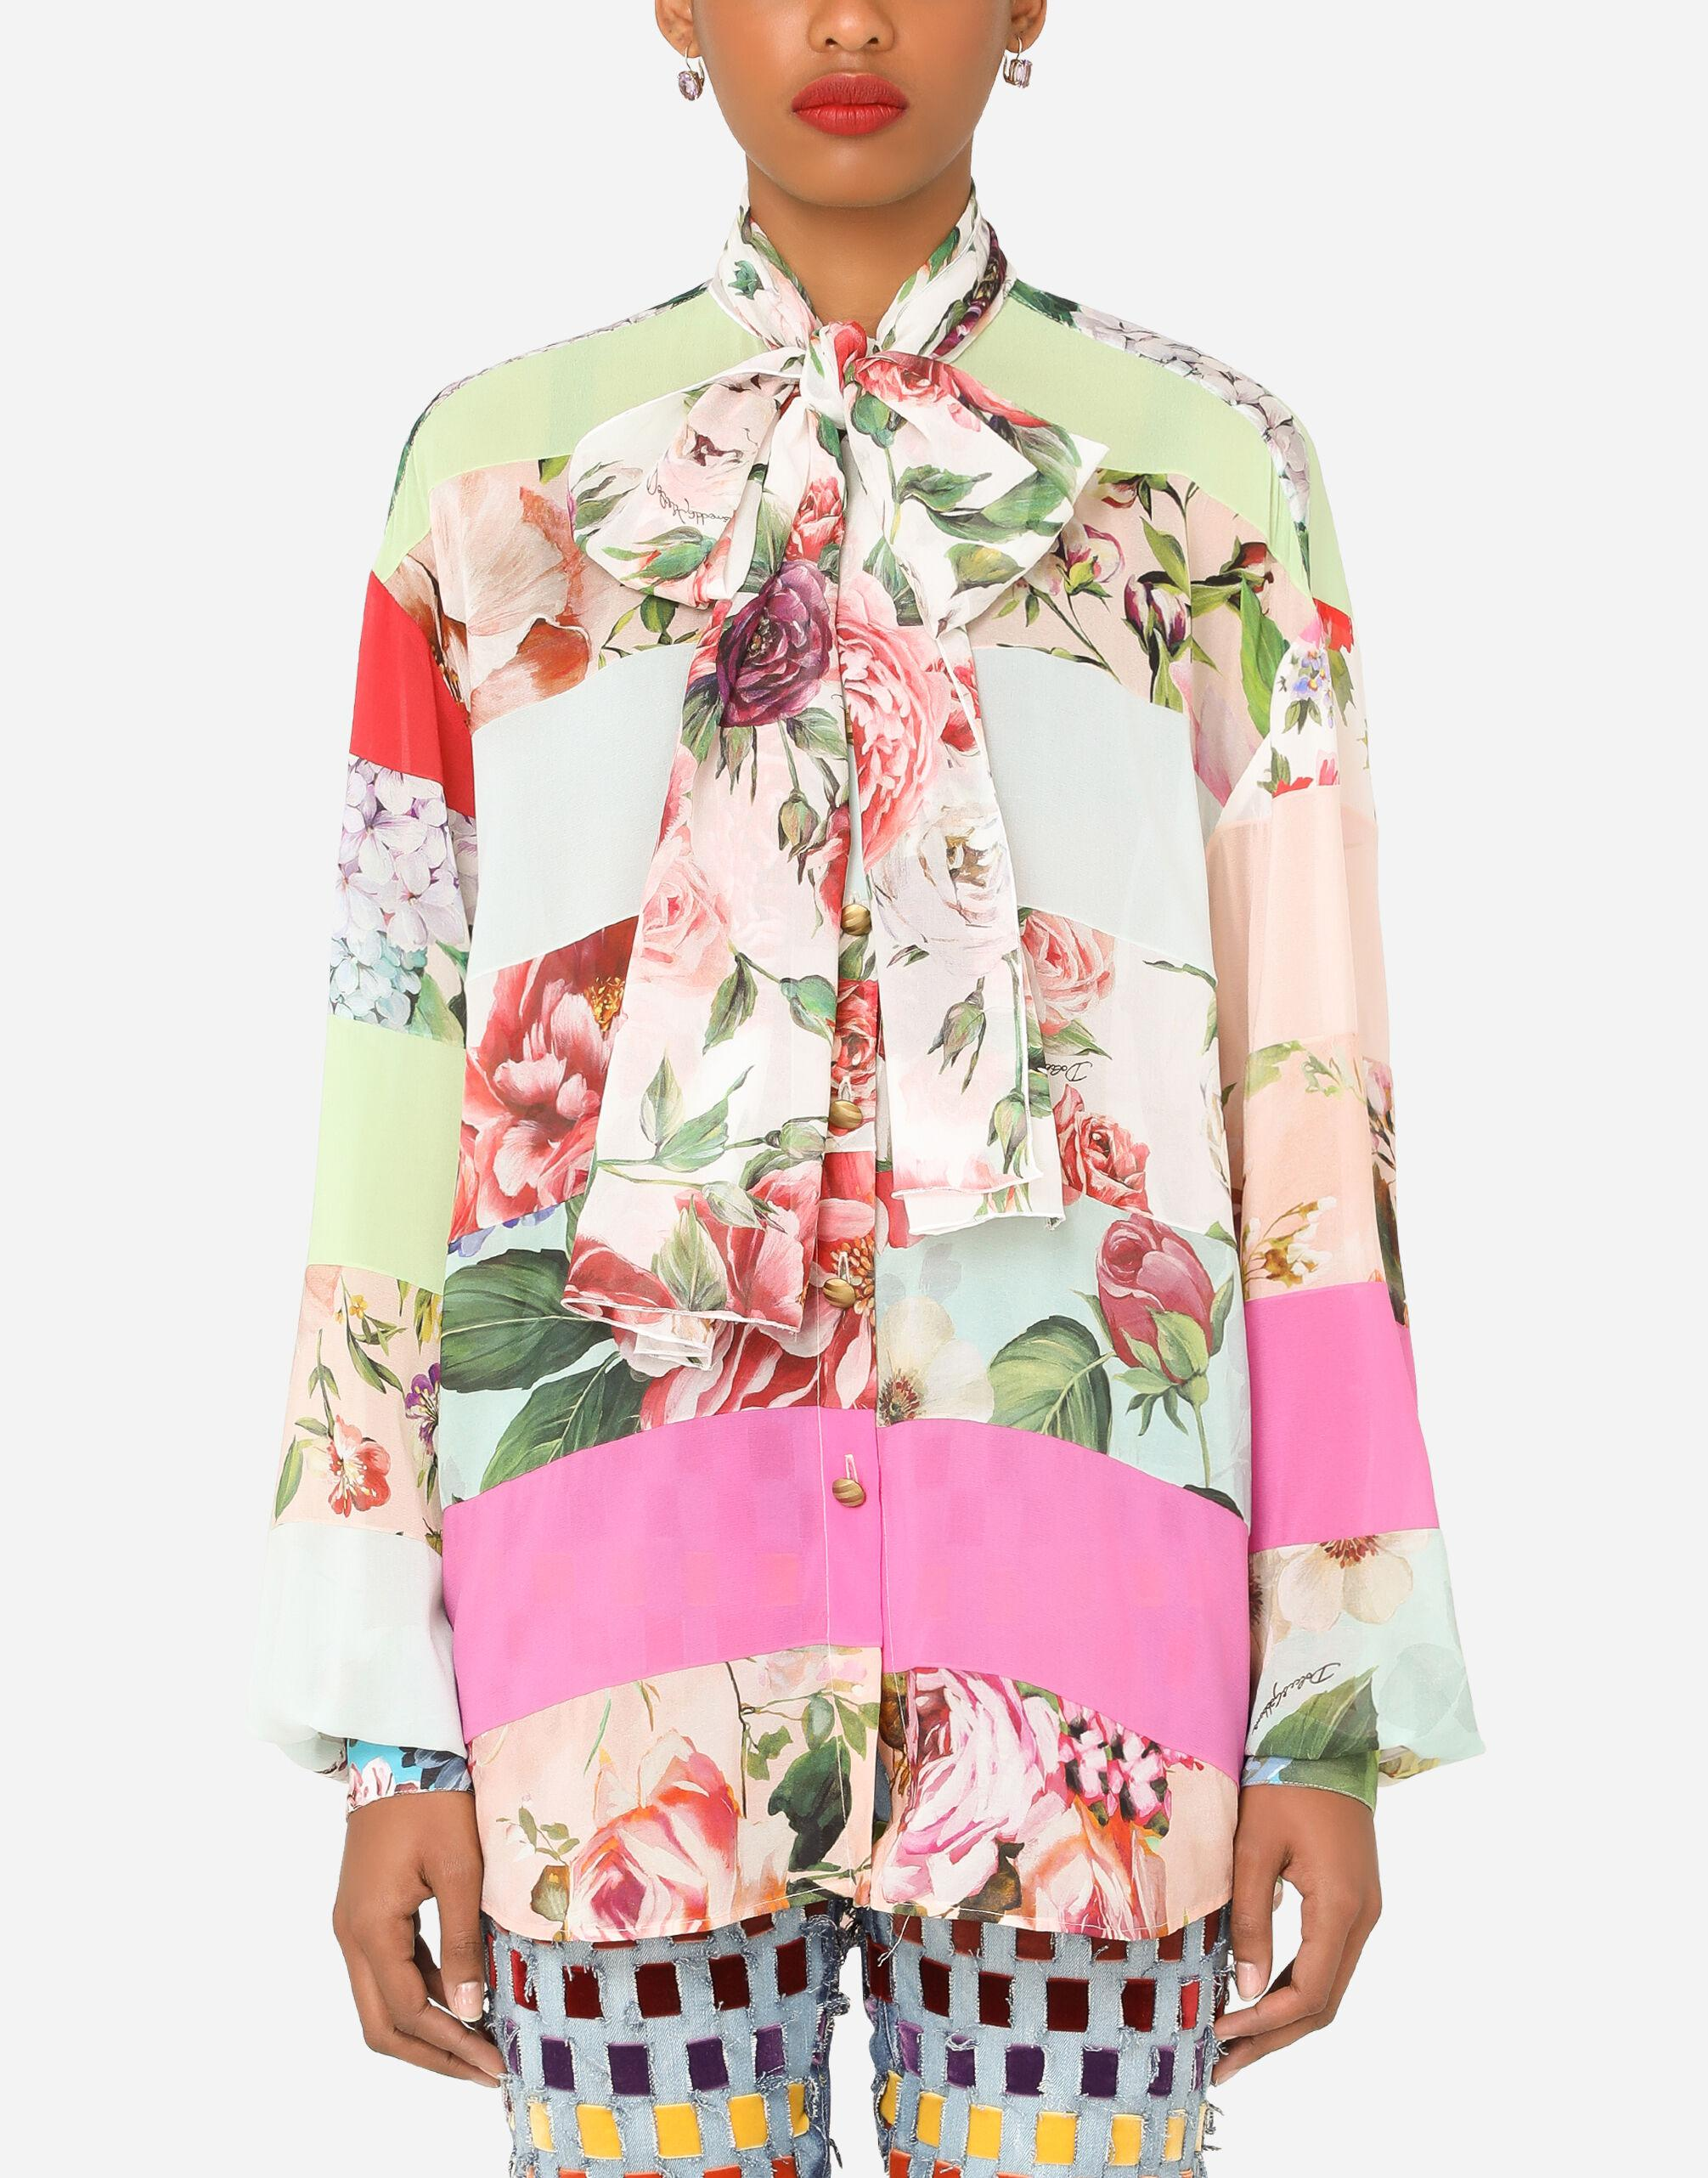 Georgette pussy-bow shirt with mixed prints